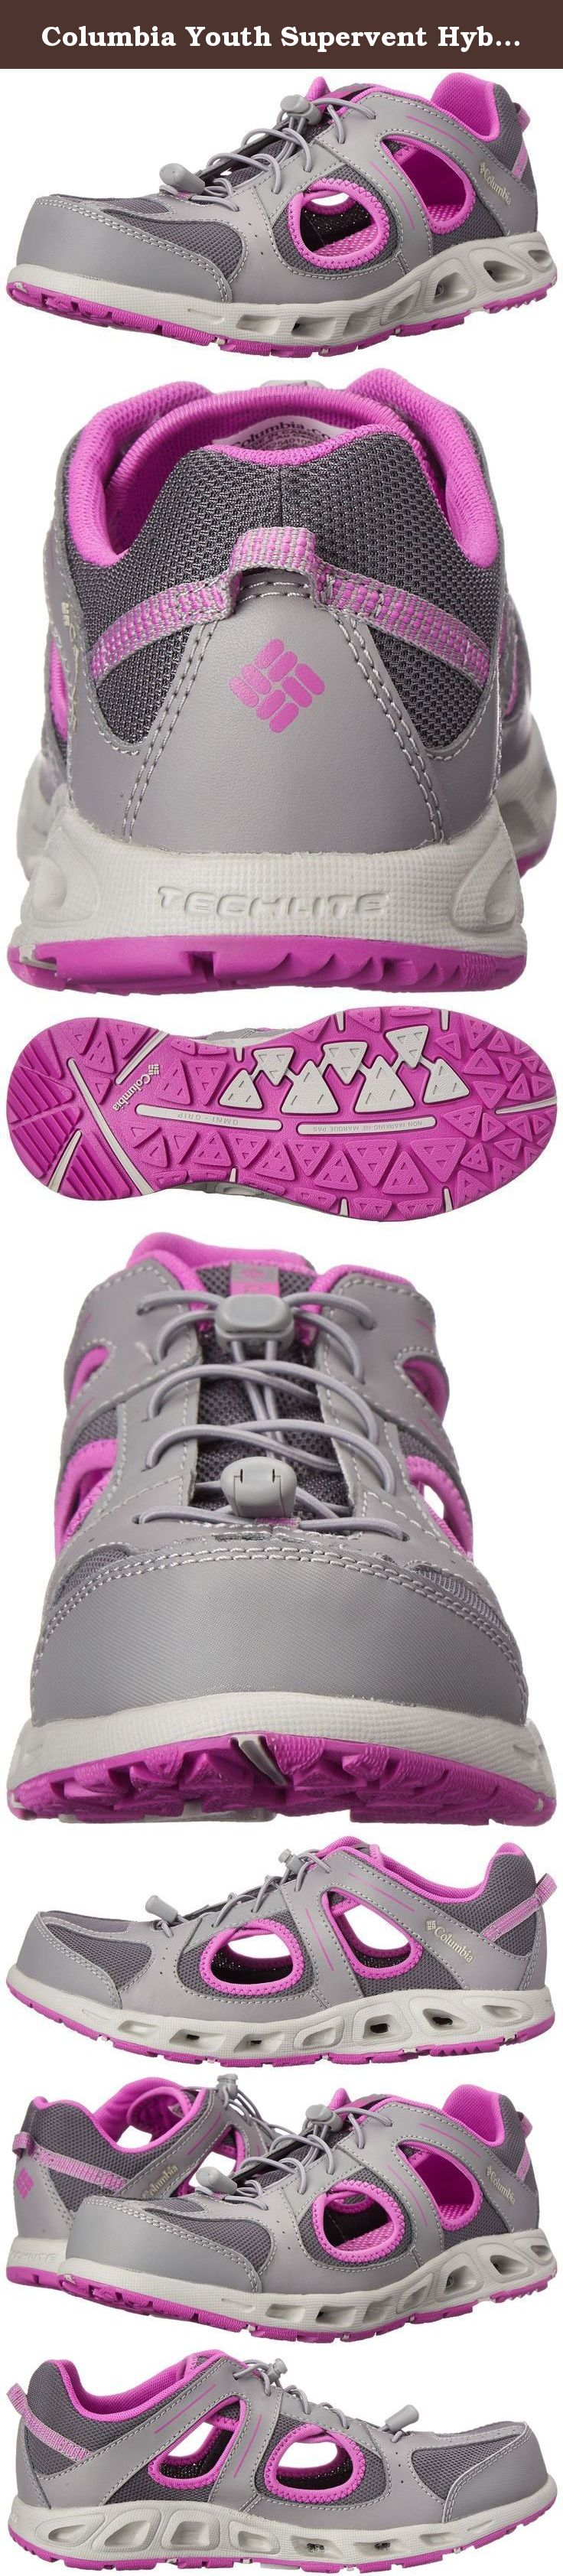 Columbia Youth Supervent Hybrid Water Shoe (Little Kid/Big Kid). Quick drying and ventilated hybrid land, boat and water shoe. Rugged closed toe mesh and synthetic water sandal.